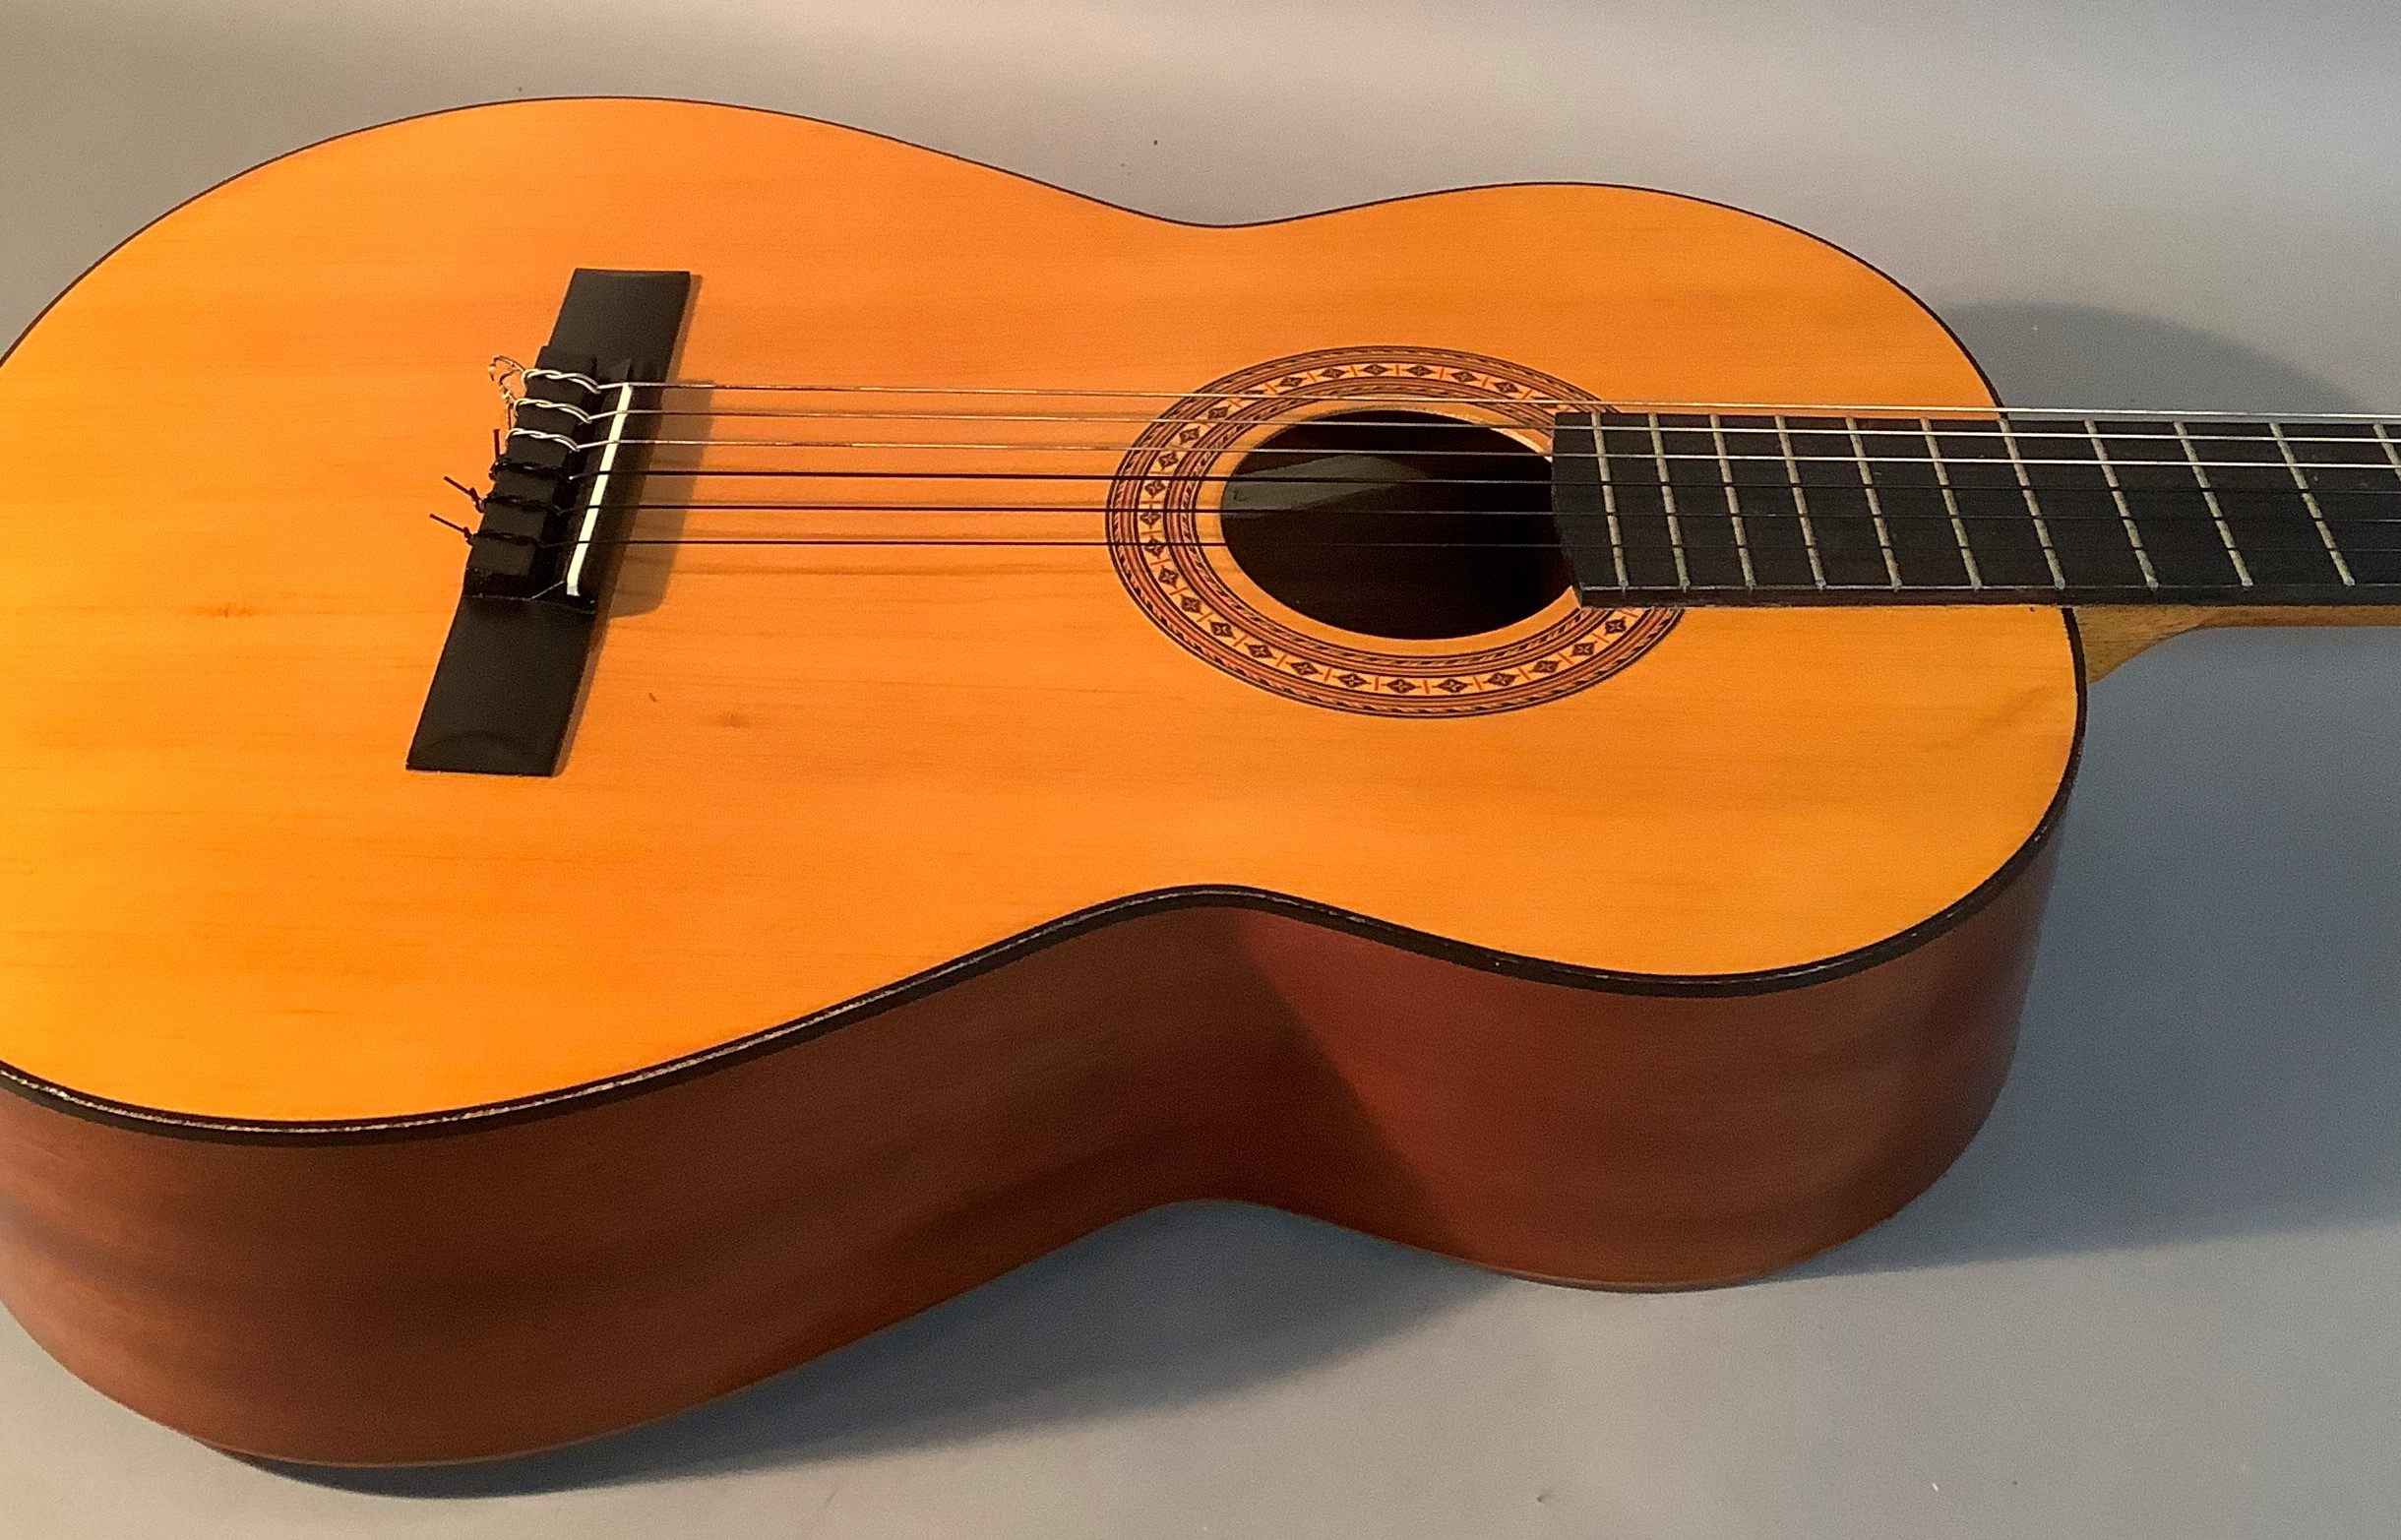 An Admira Almeria classical guitar with Oregon pine top and Sapelli back, ebonized finger plate - Image 2 of 6